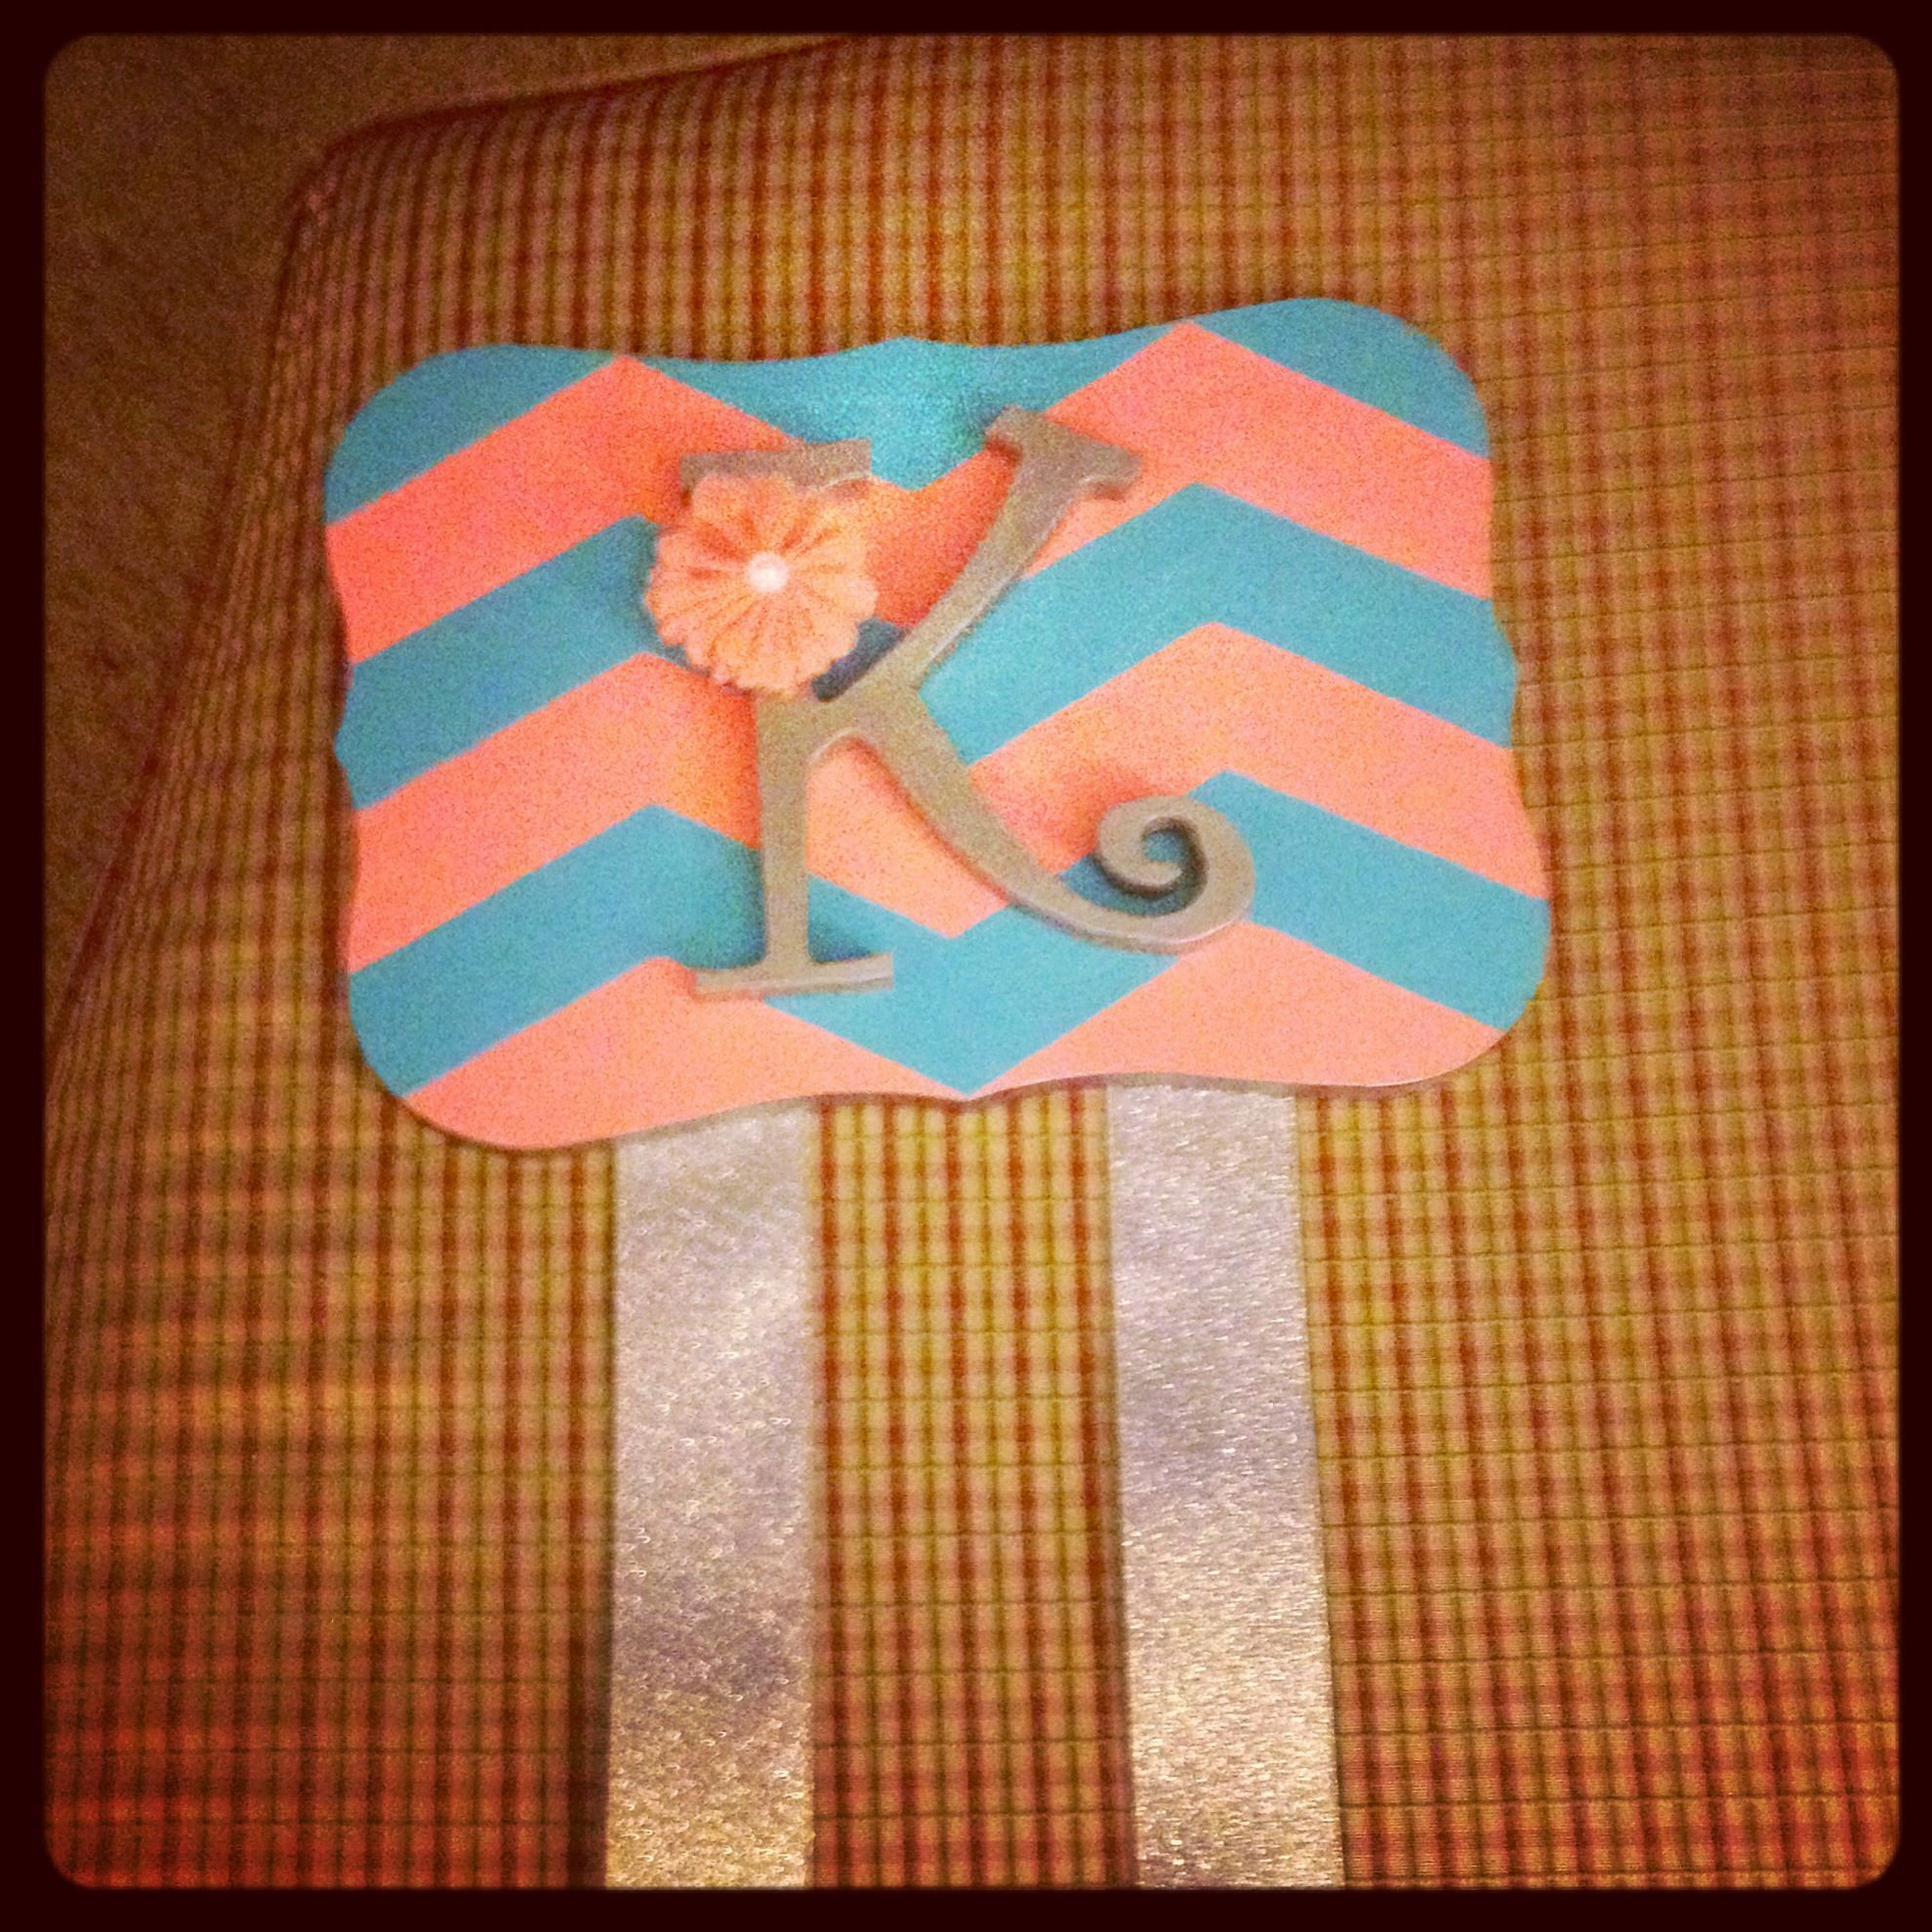 Chevron bow holder. Made a grid for the chevron, hand painted, and added letter and accessories!